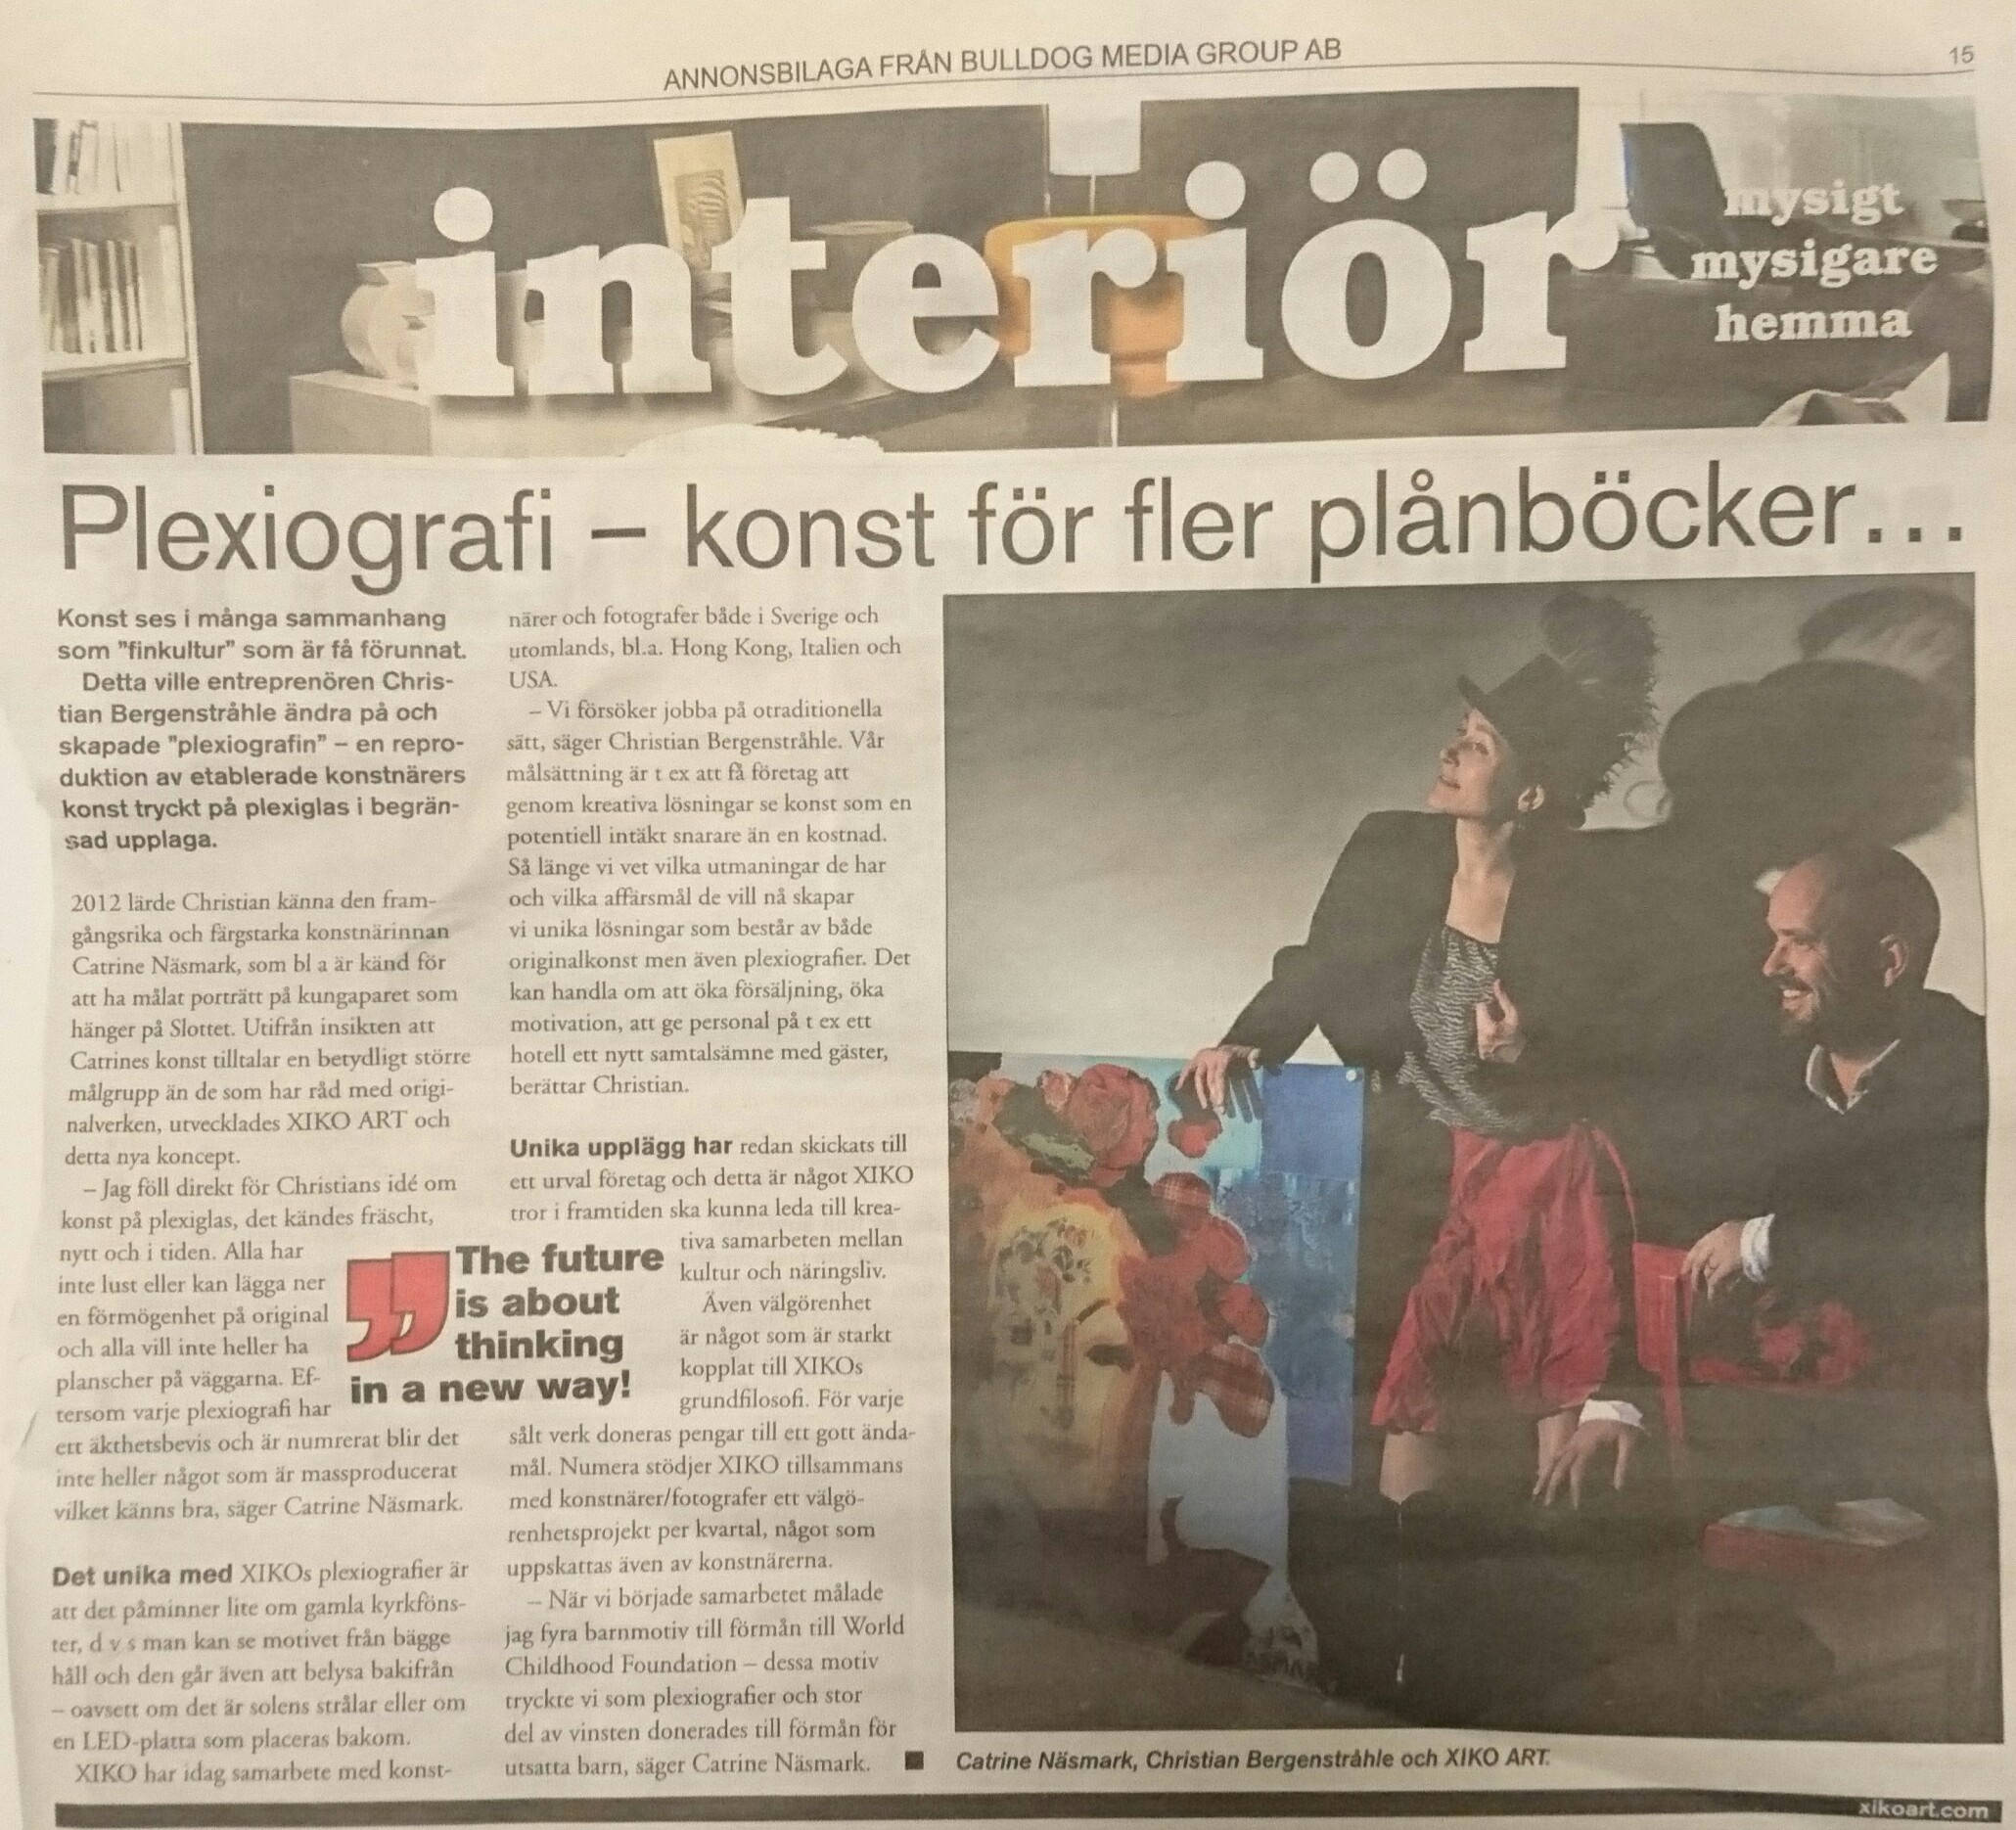 Advertorial about XIKO ART